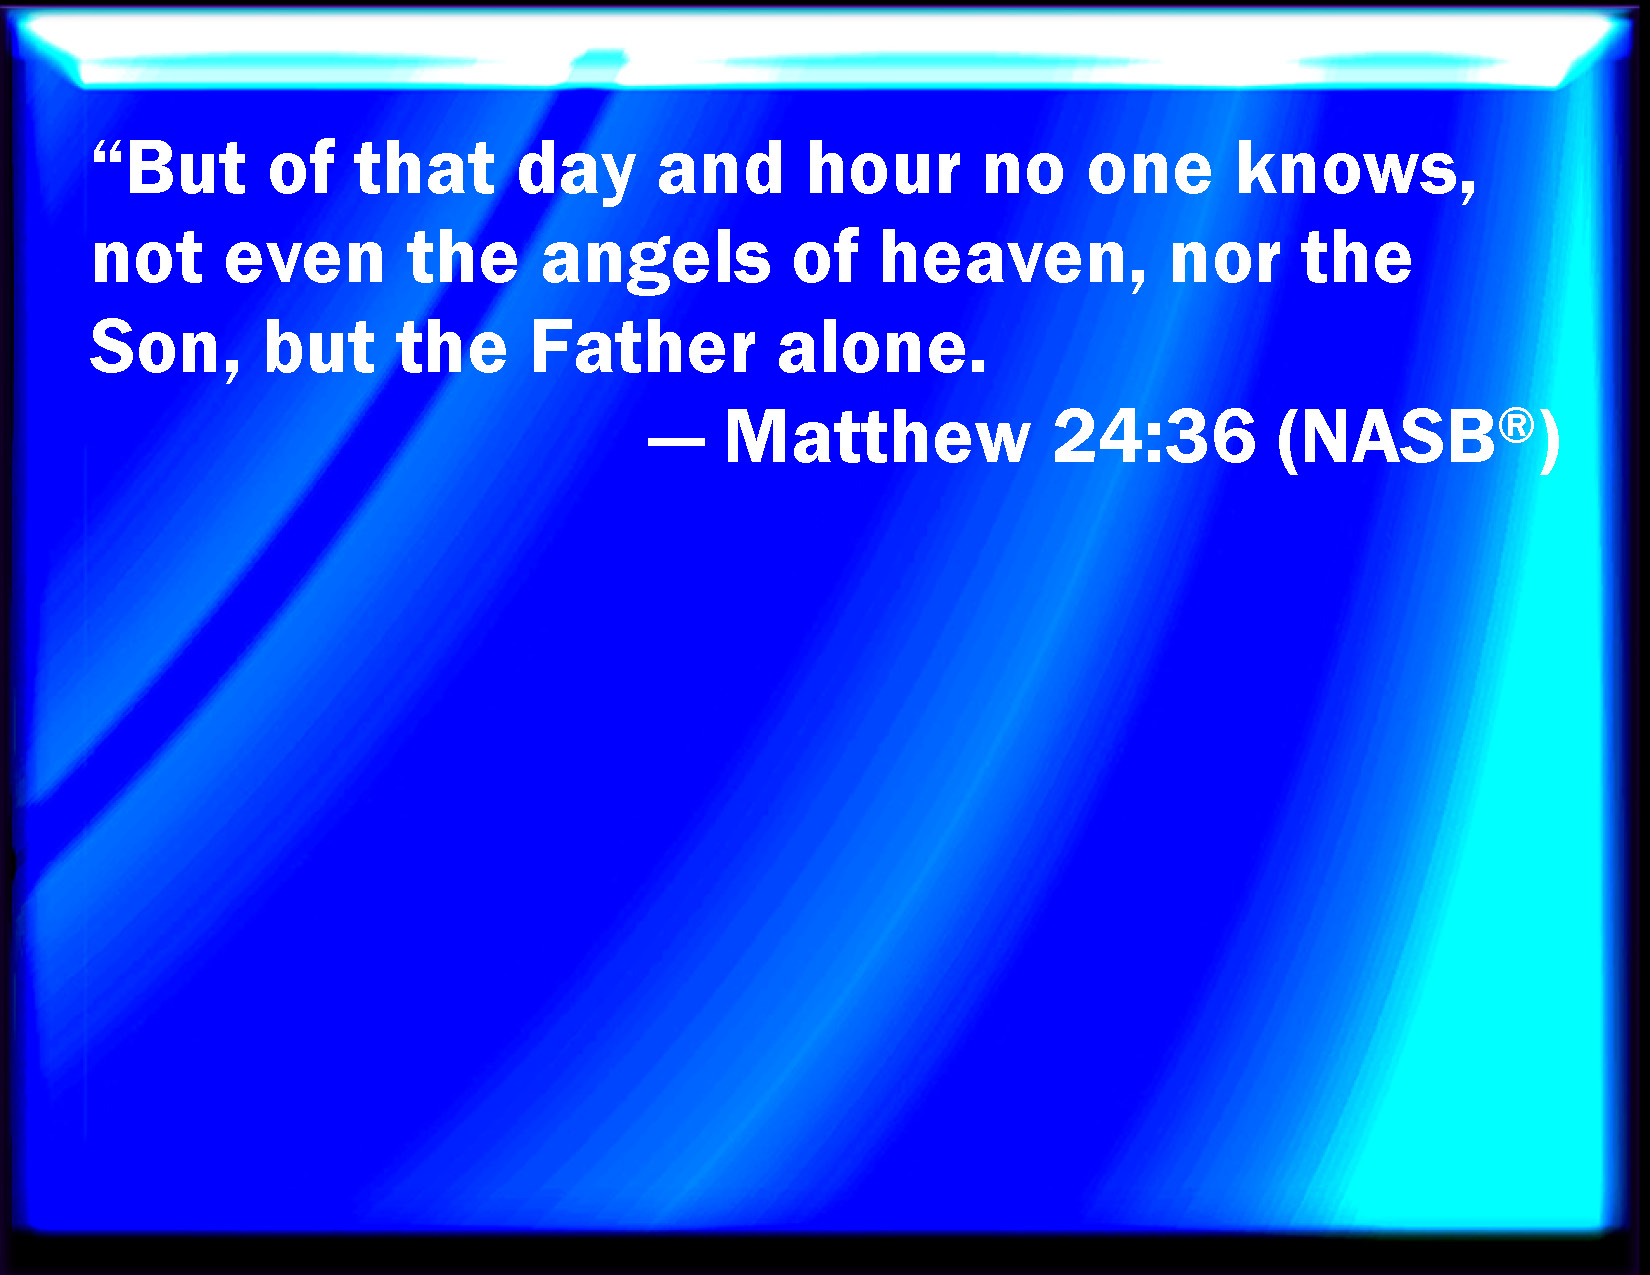 matthew 24 36 - No man knows the day or the hour